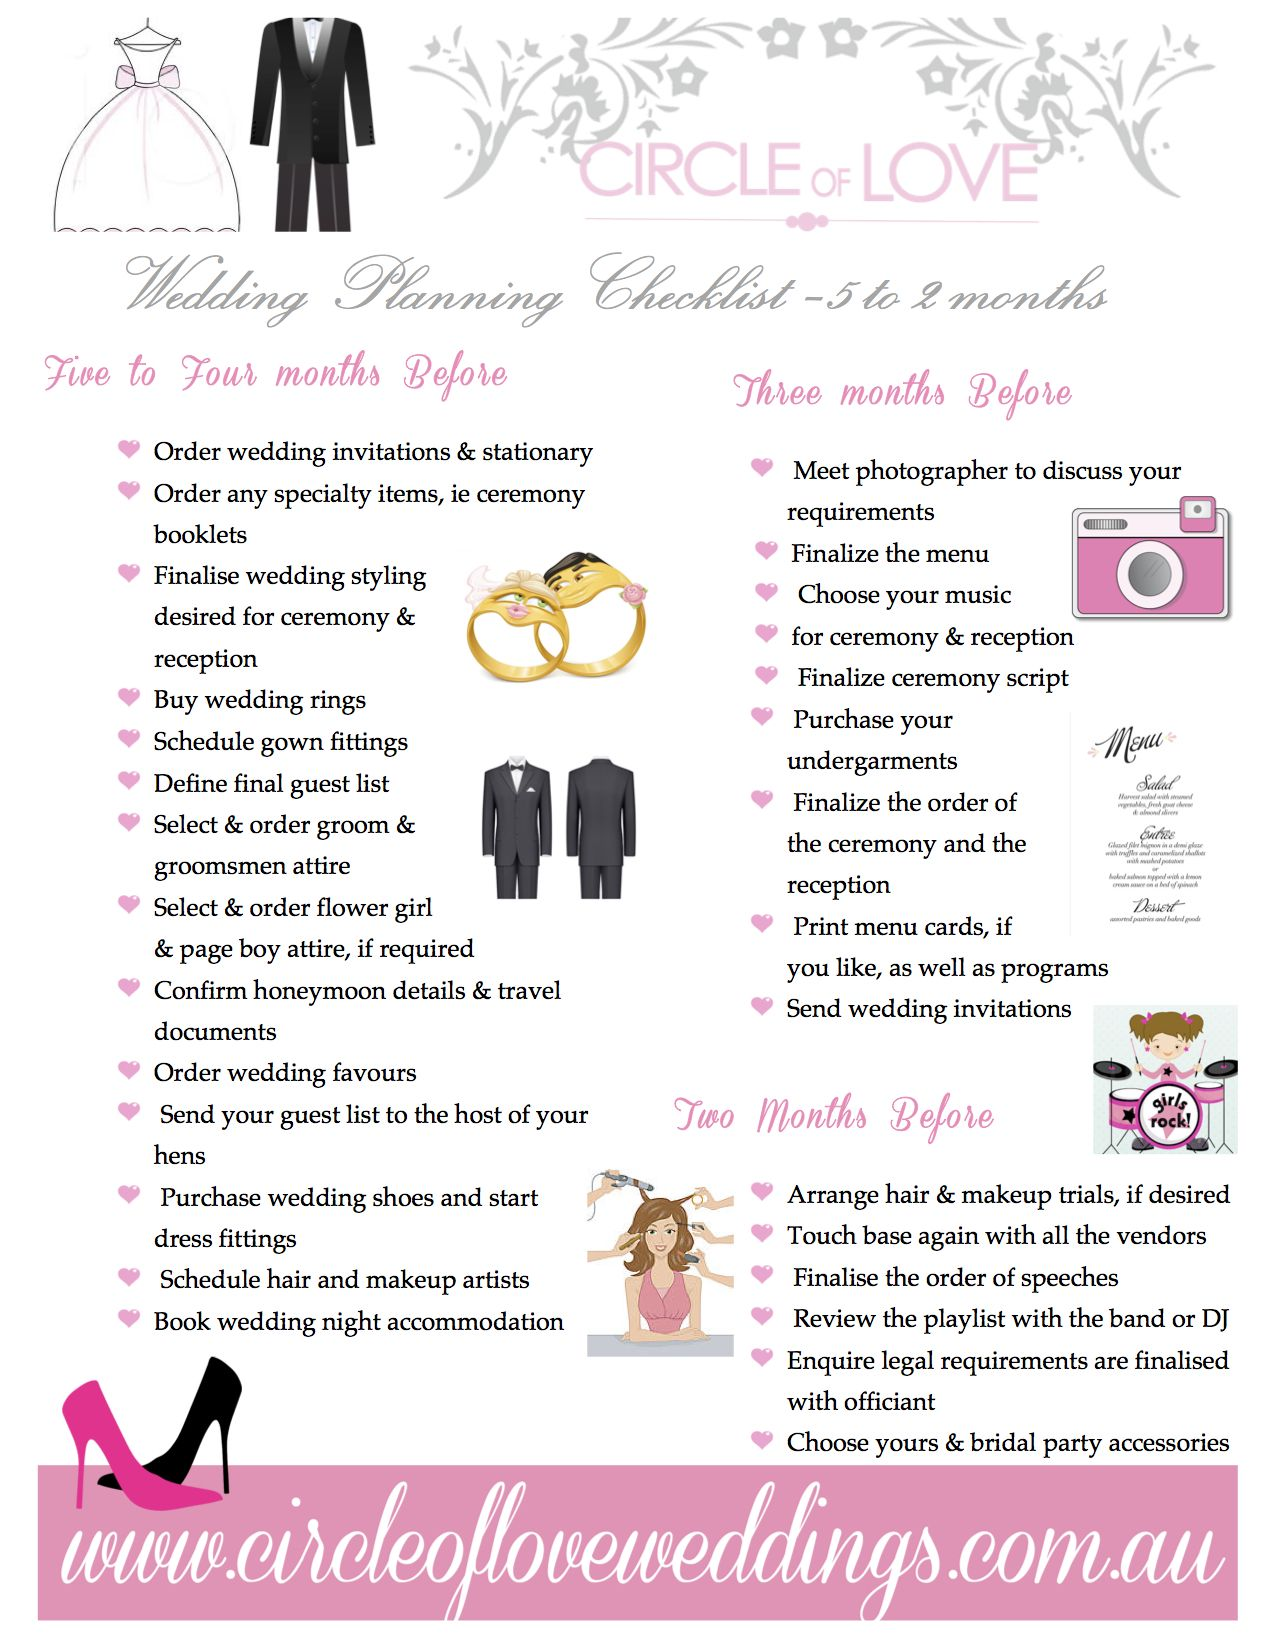 2 Wedding Planning Checklist 5 Months Before Download Our FREE Timeline